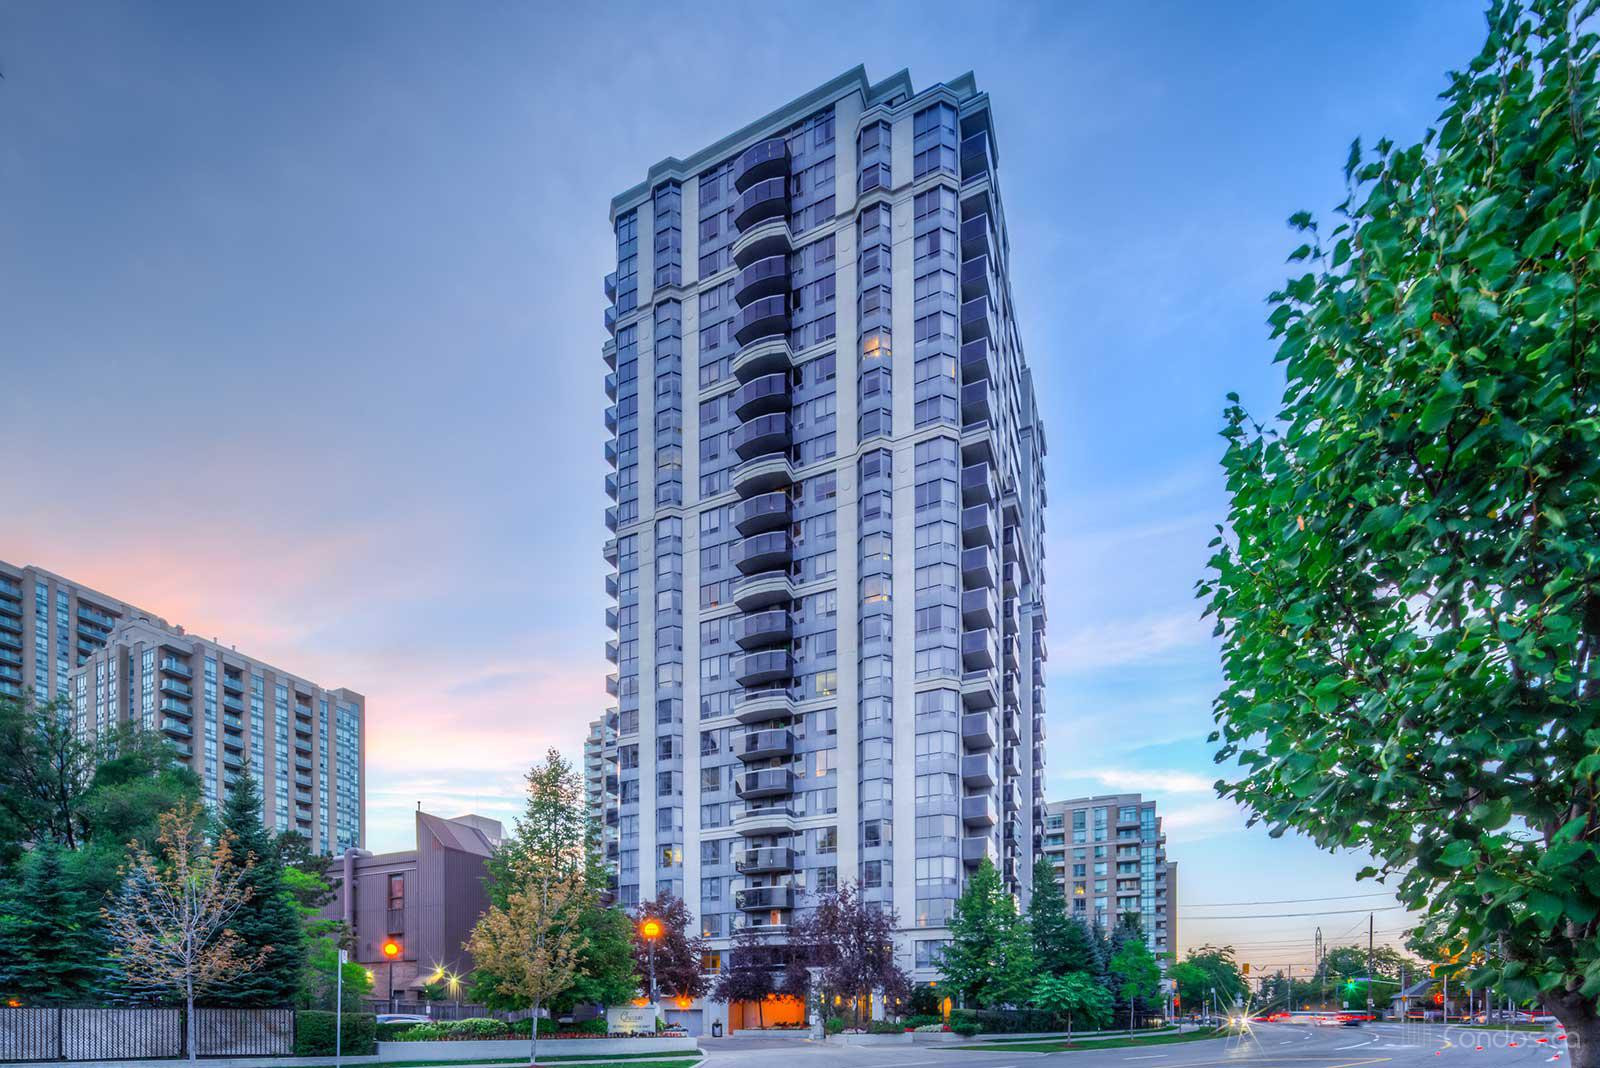 Chicago Residences at 35 Finch Ave E, Toronto 1